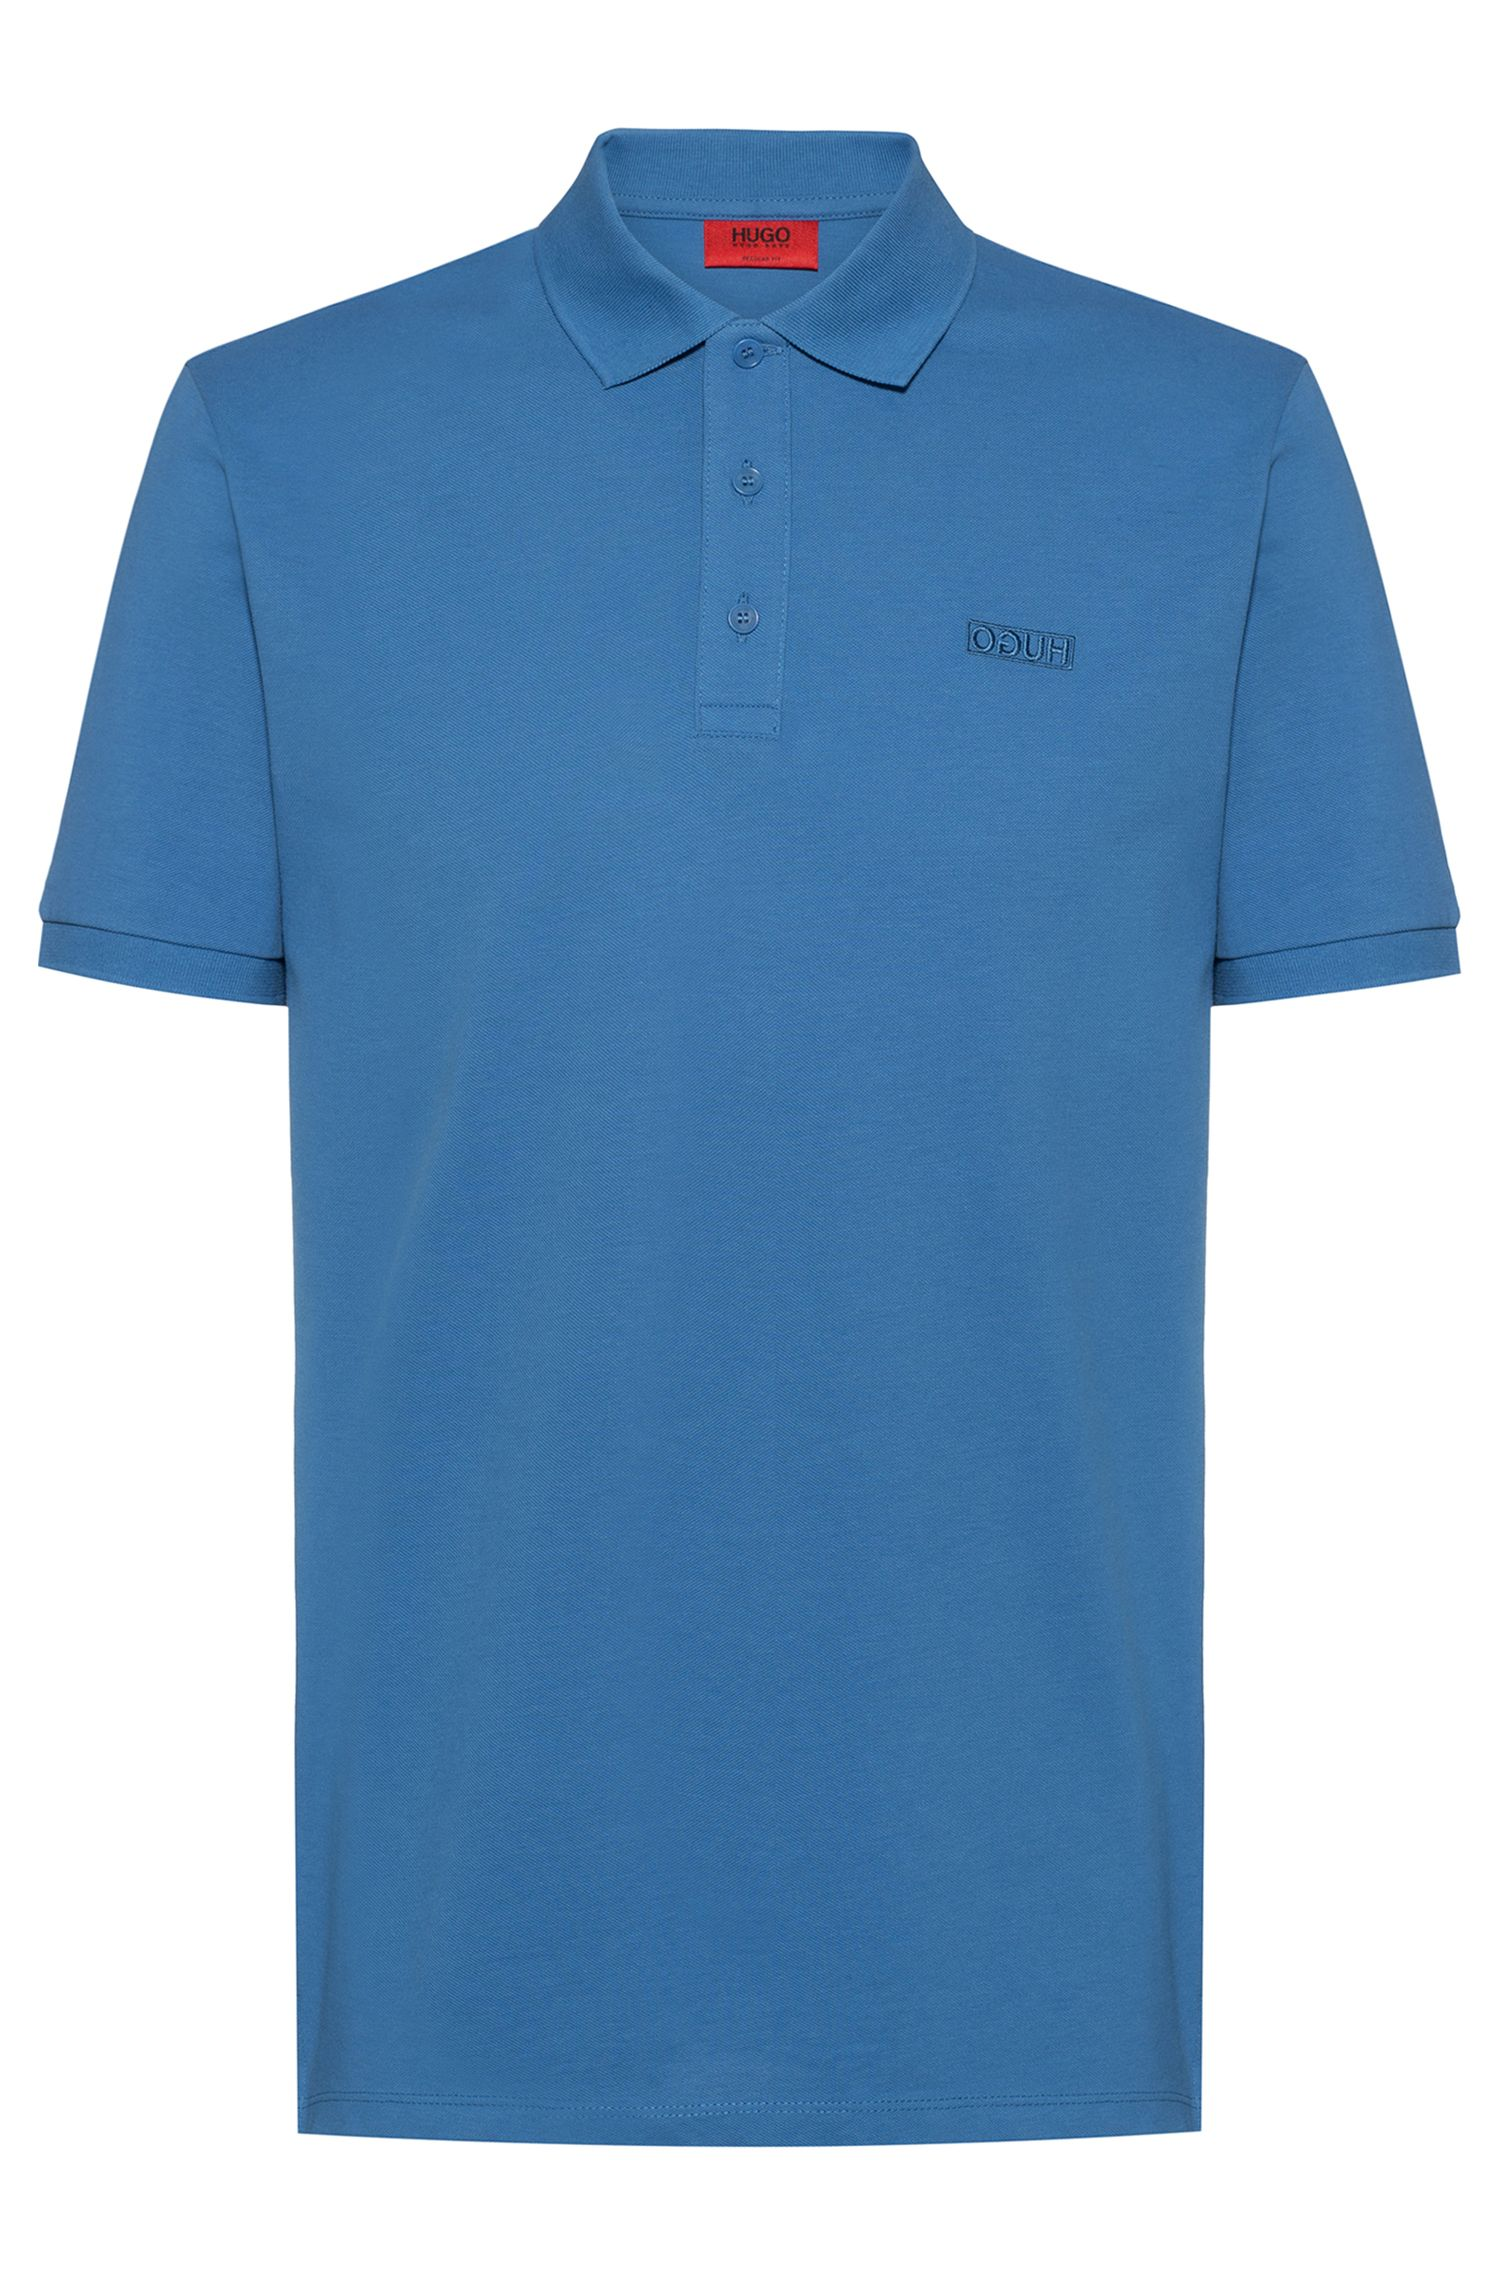 Reversed-logo polo shirt in cotton piqué, Azul